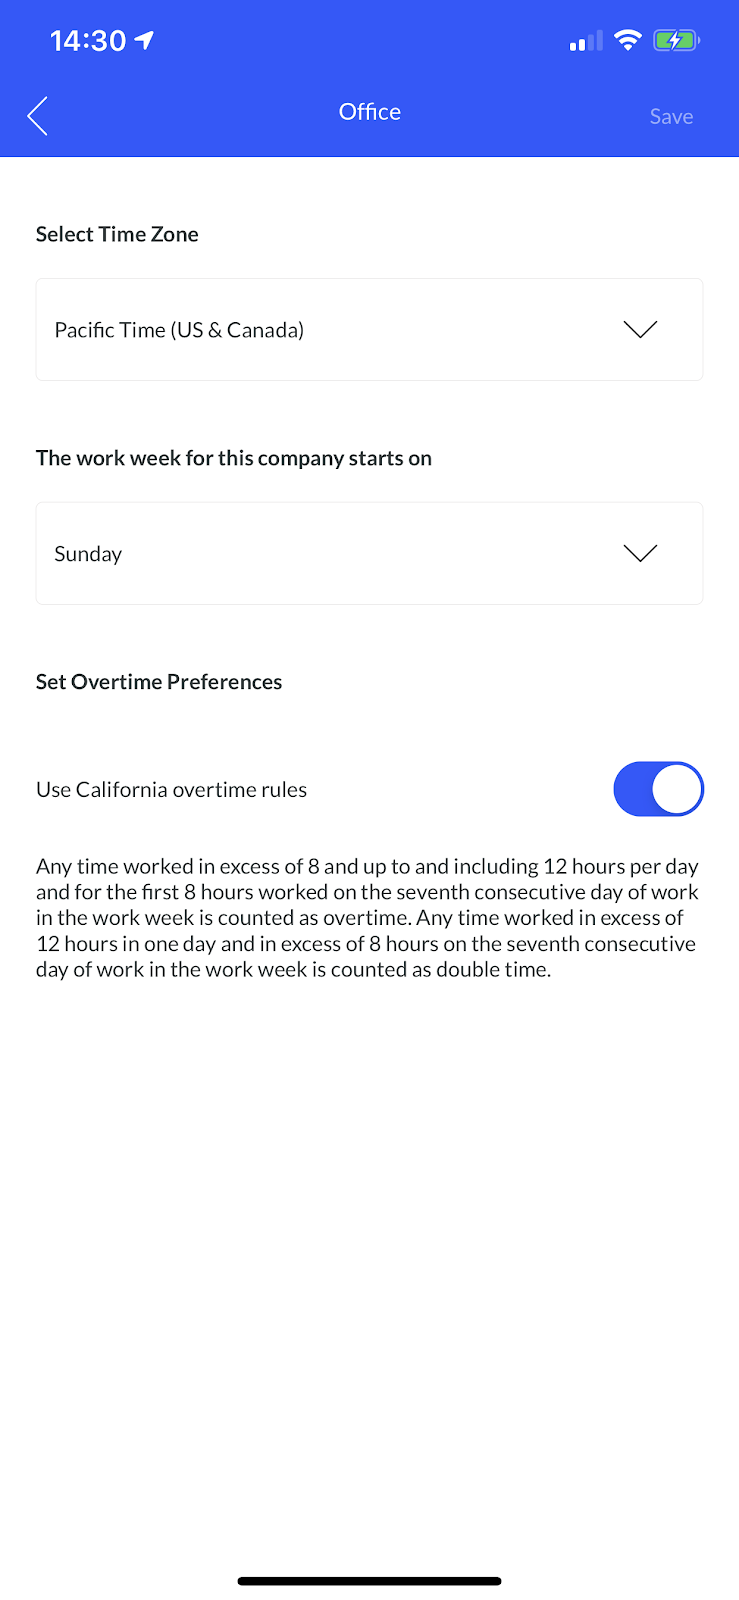 Screenshot showing how to edit office settings within the mobile app